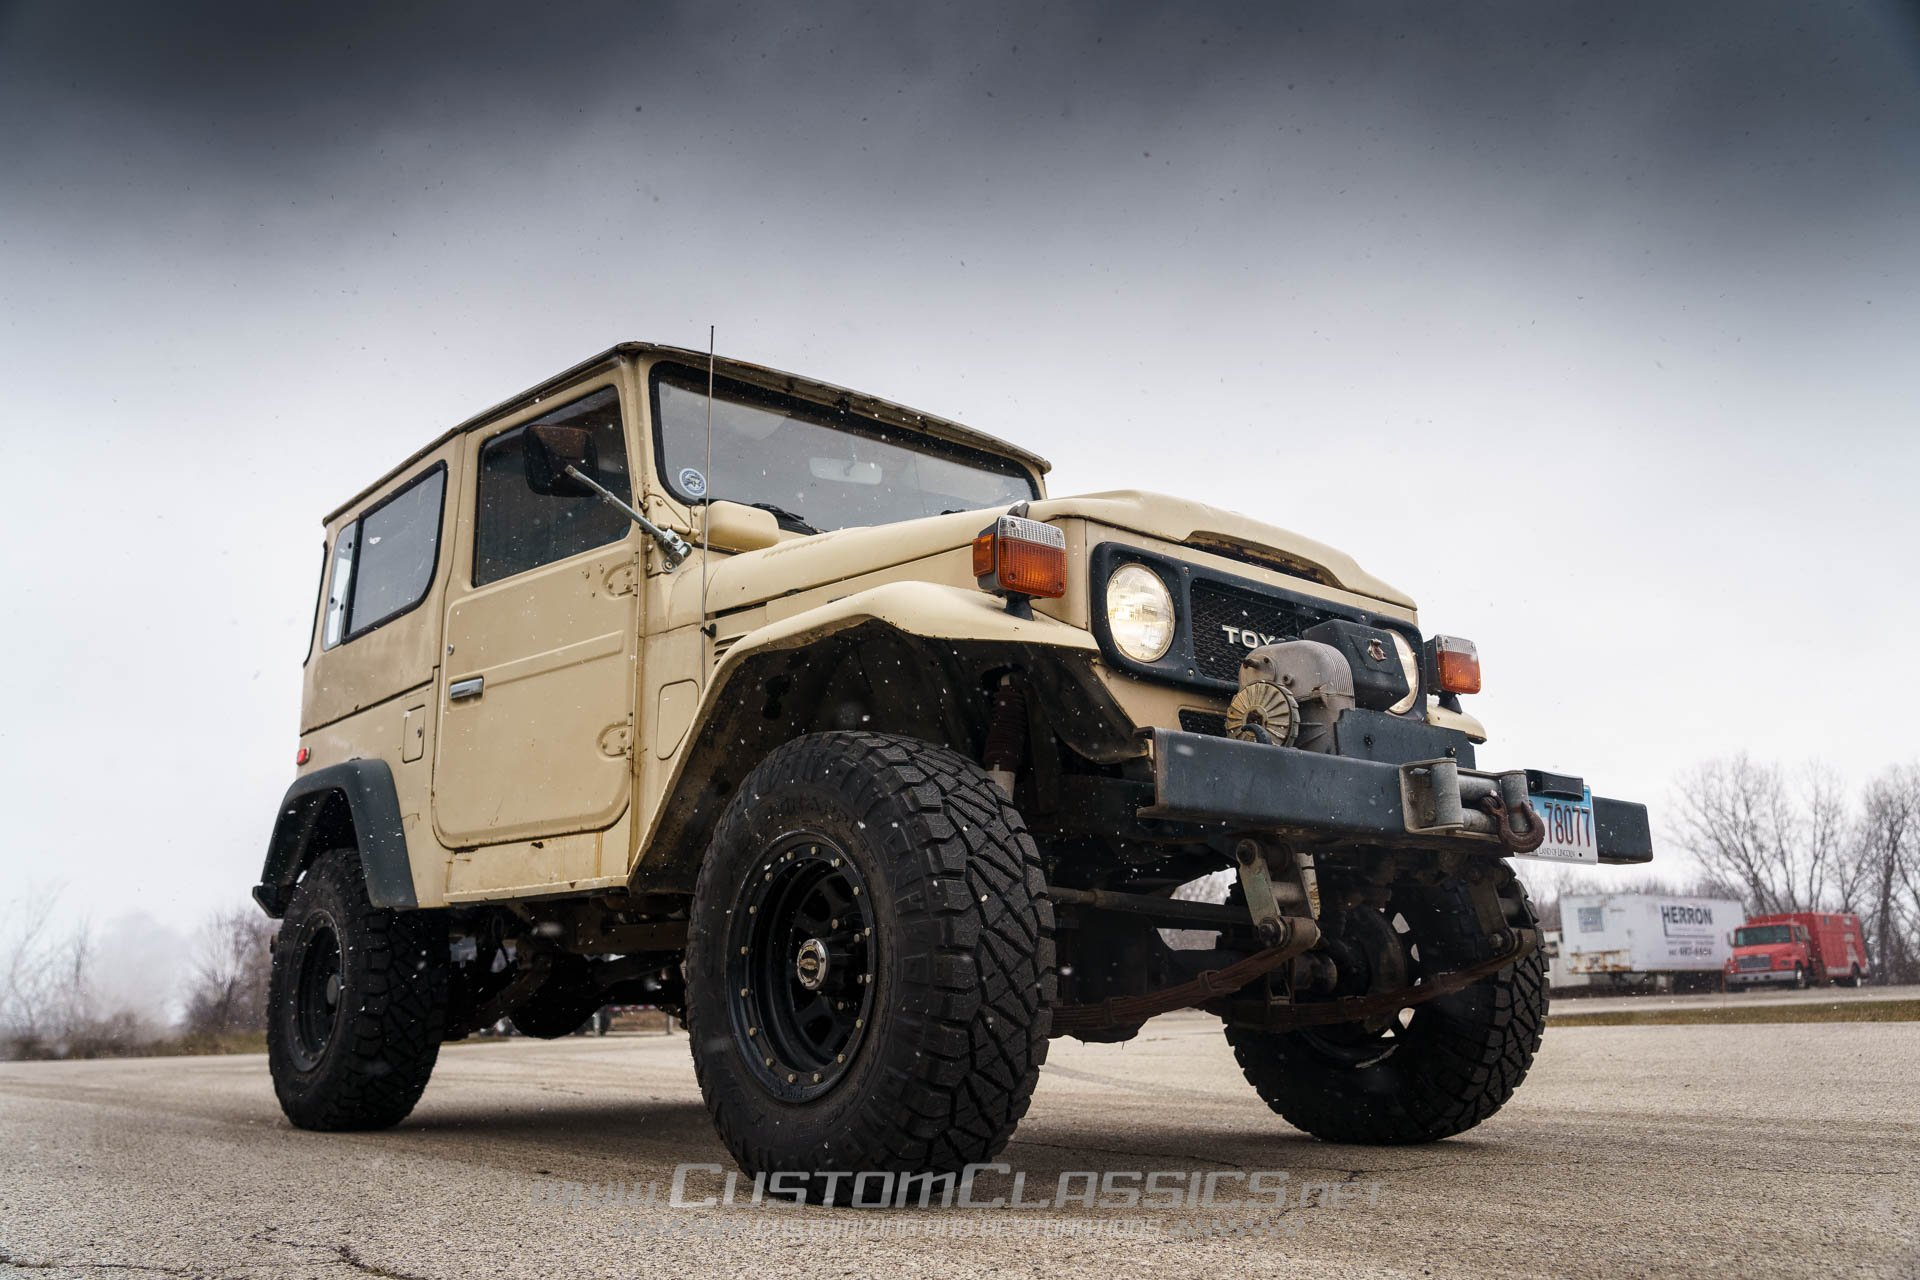 1979 Toyota Land Cruiser | Custom Classics Auto Body and Restoration